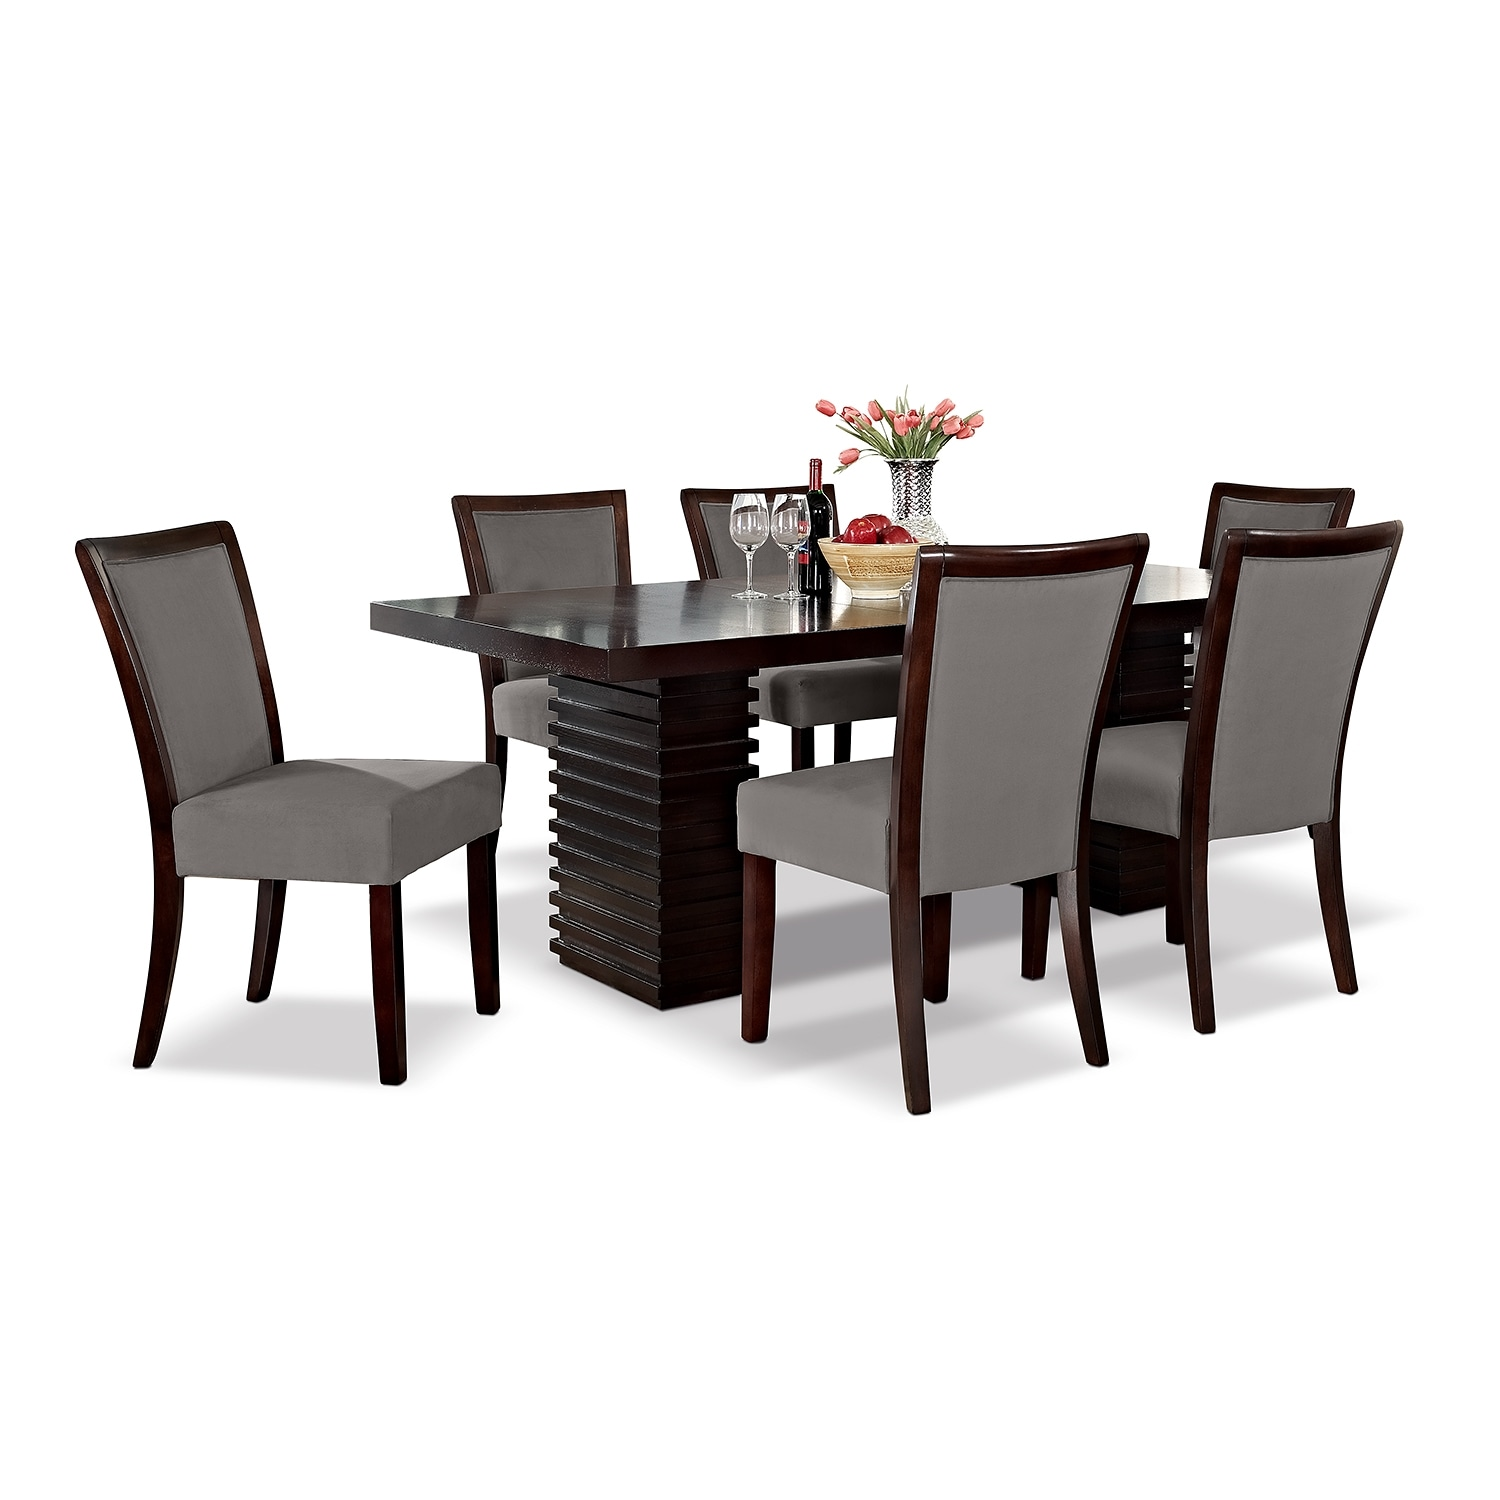 Paragon Tango 7 Pc. Dining Room